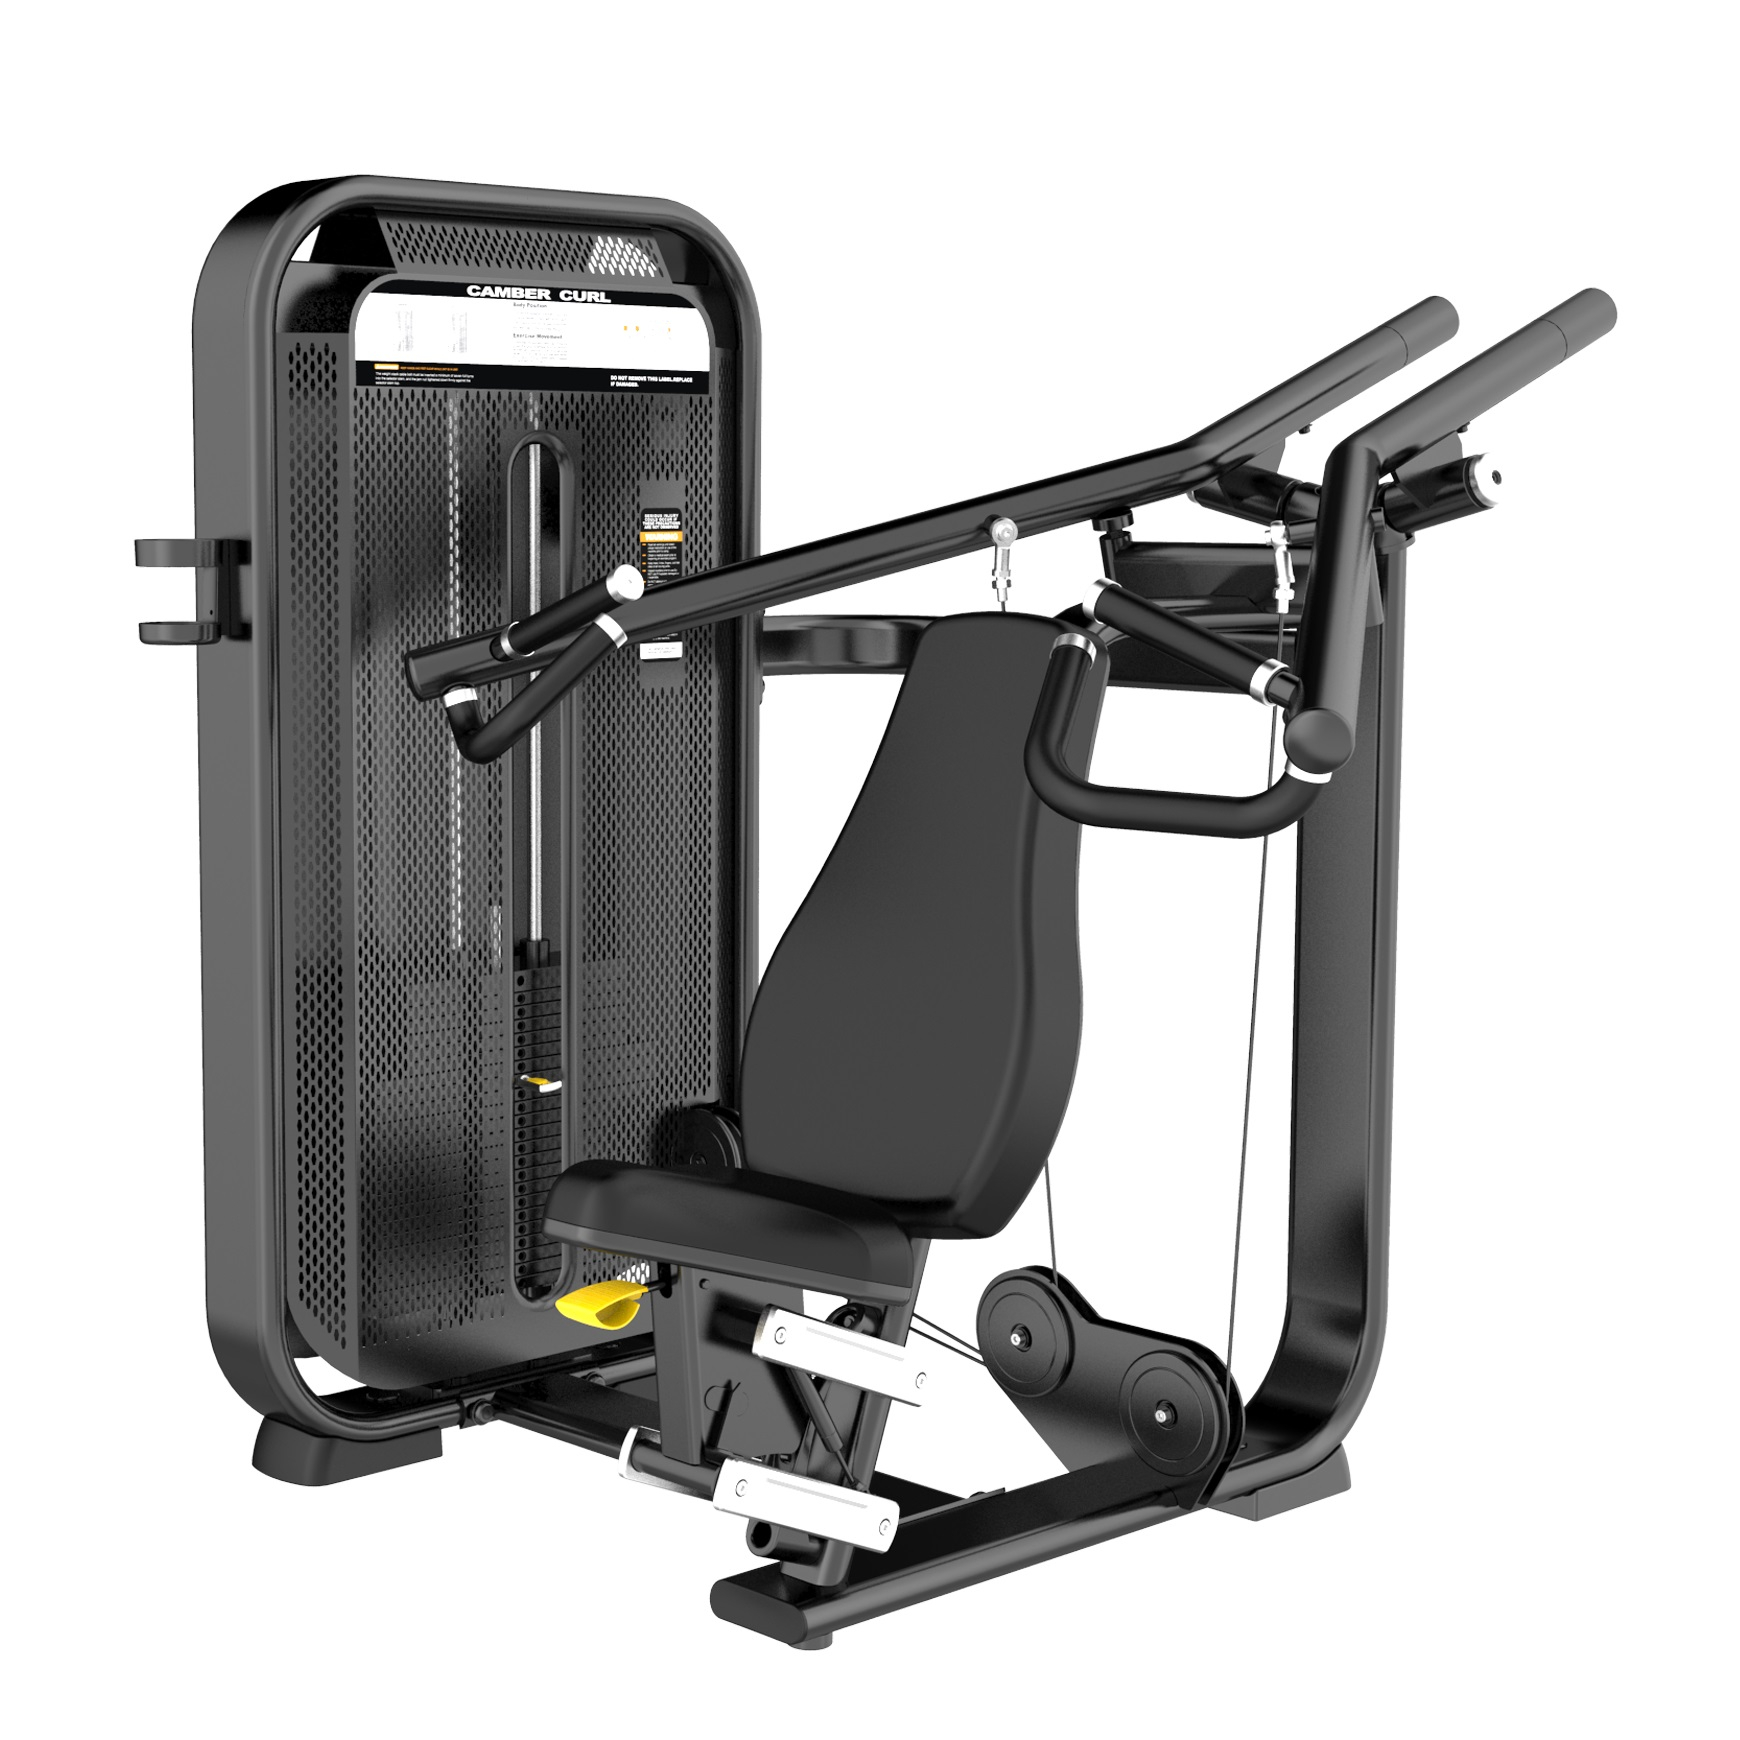 E-7006 Жим от плеч (Shoulder Press). Стек 110 кг. - в интернет магазине Acrobat24.ru